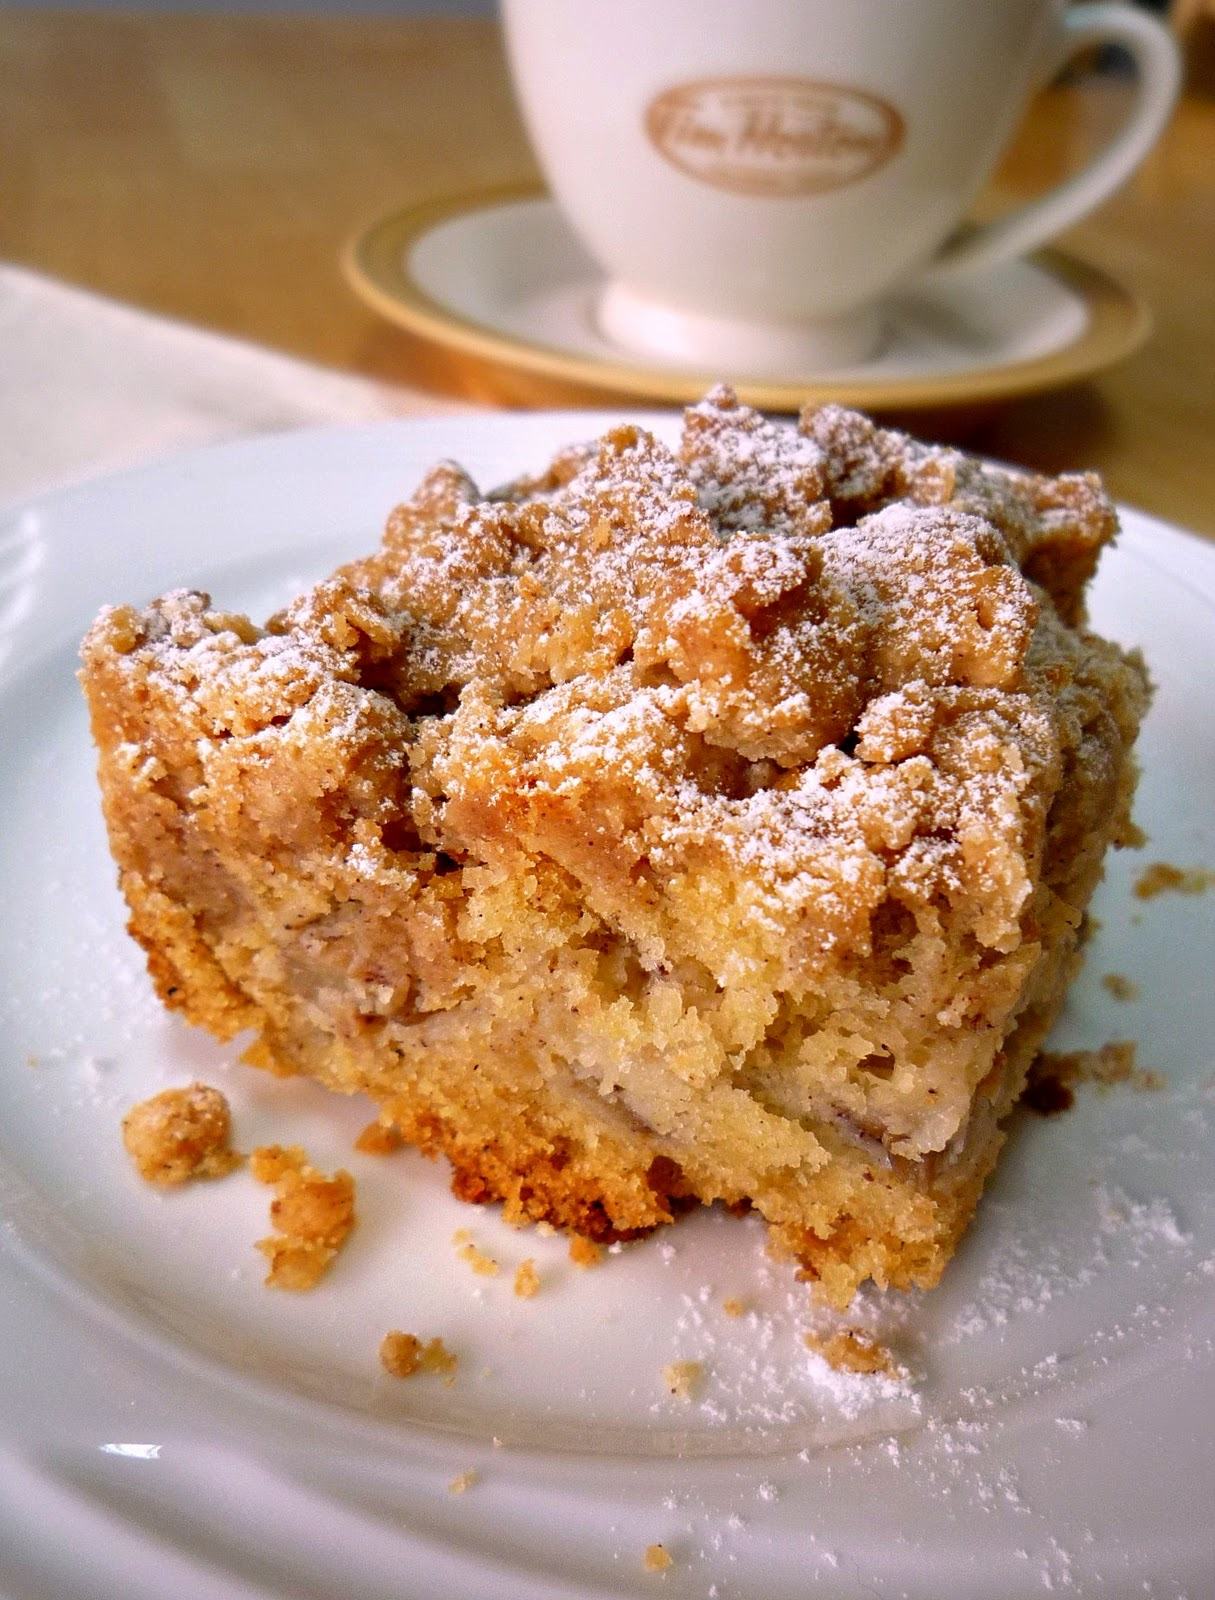 ... caramel apple and walnut coffee cake for baketogether apple topped